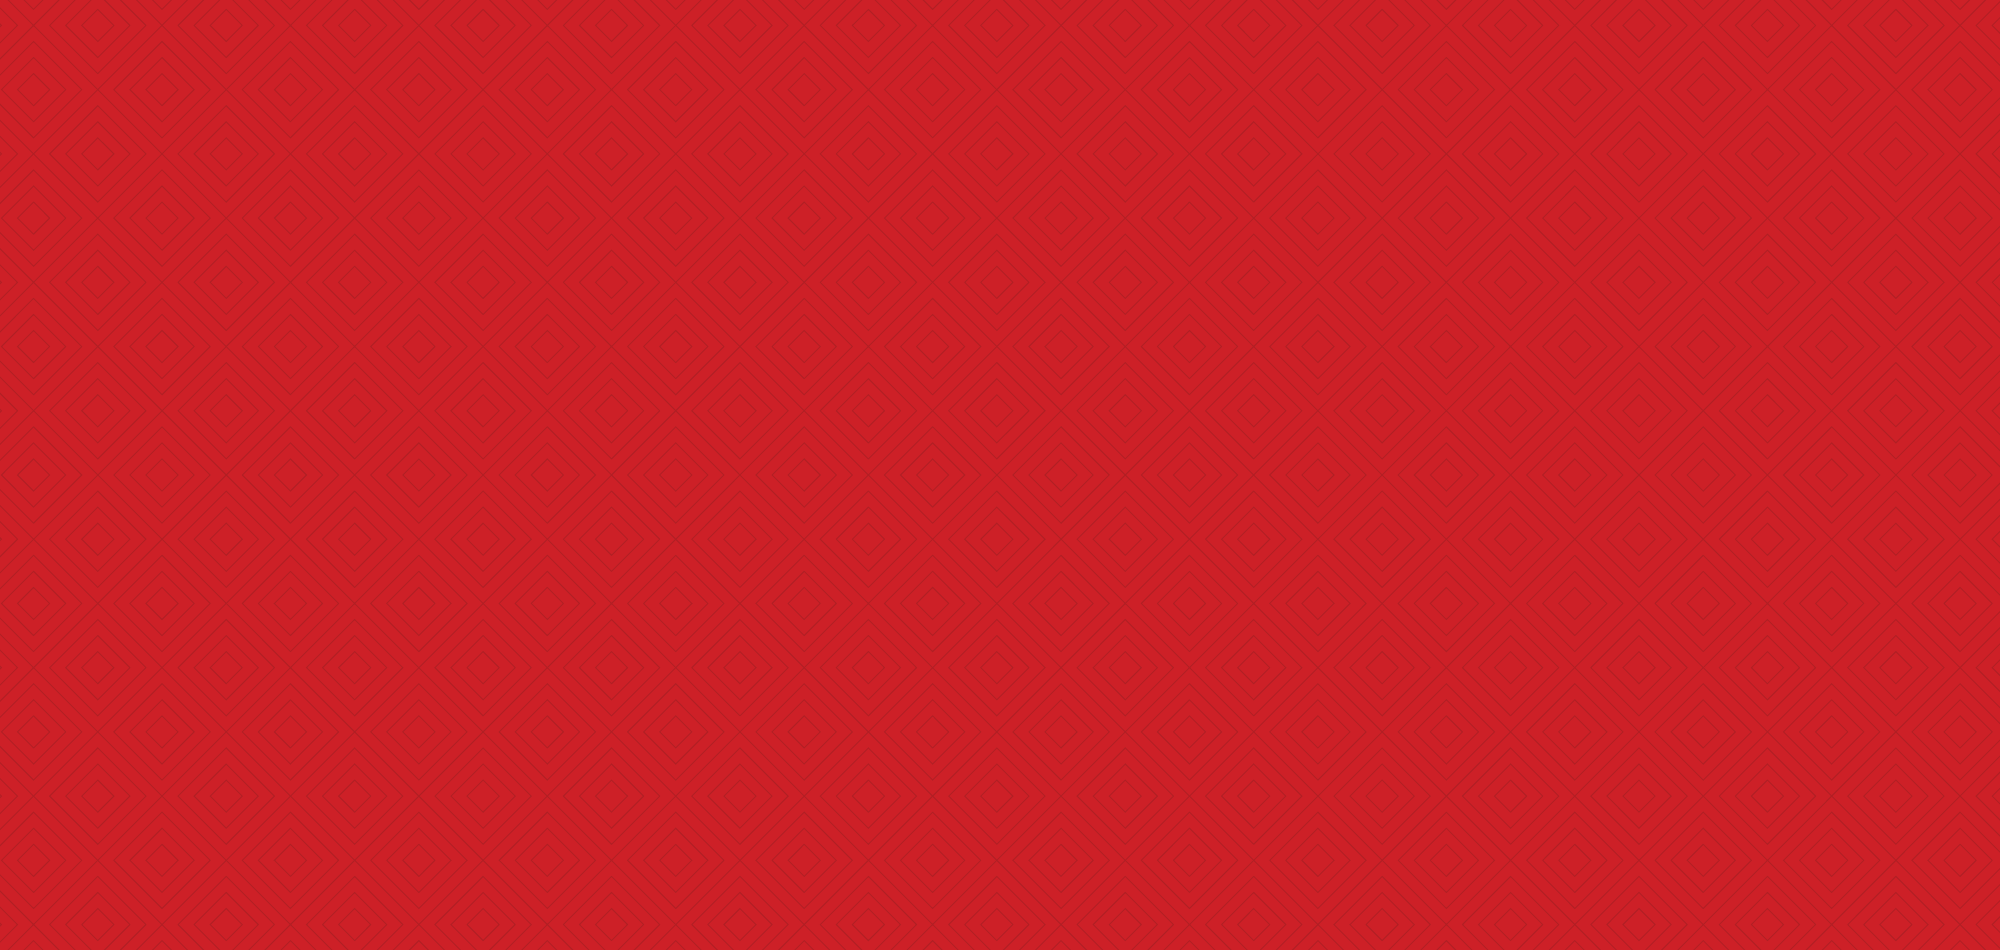 Top Red HQ Pictures, Red WD+86 Wallpapers